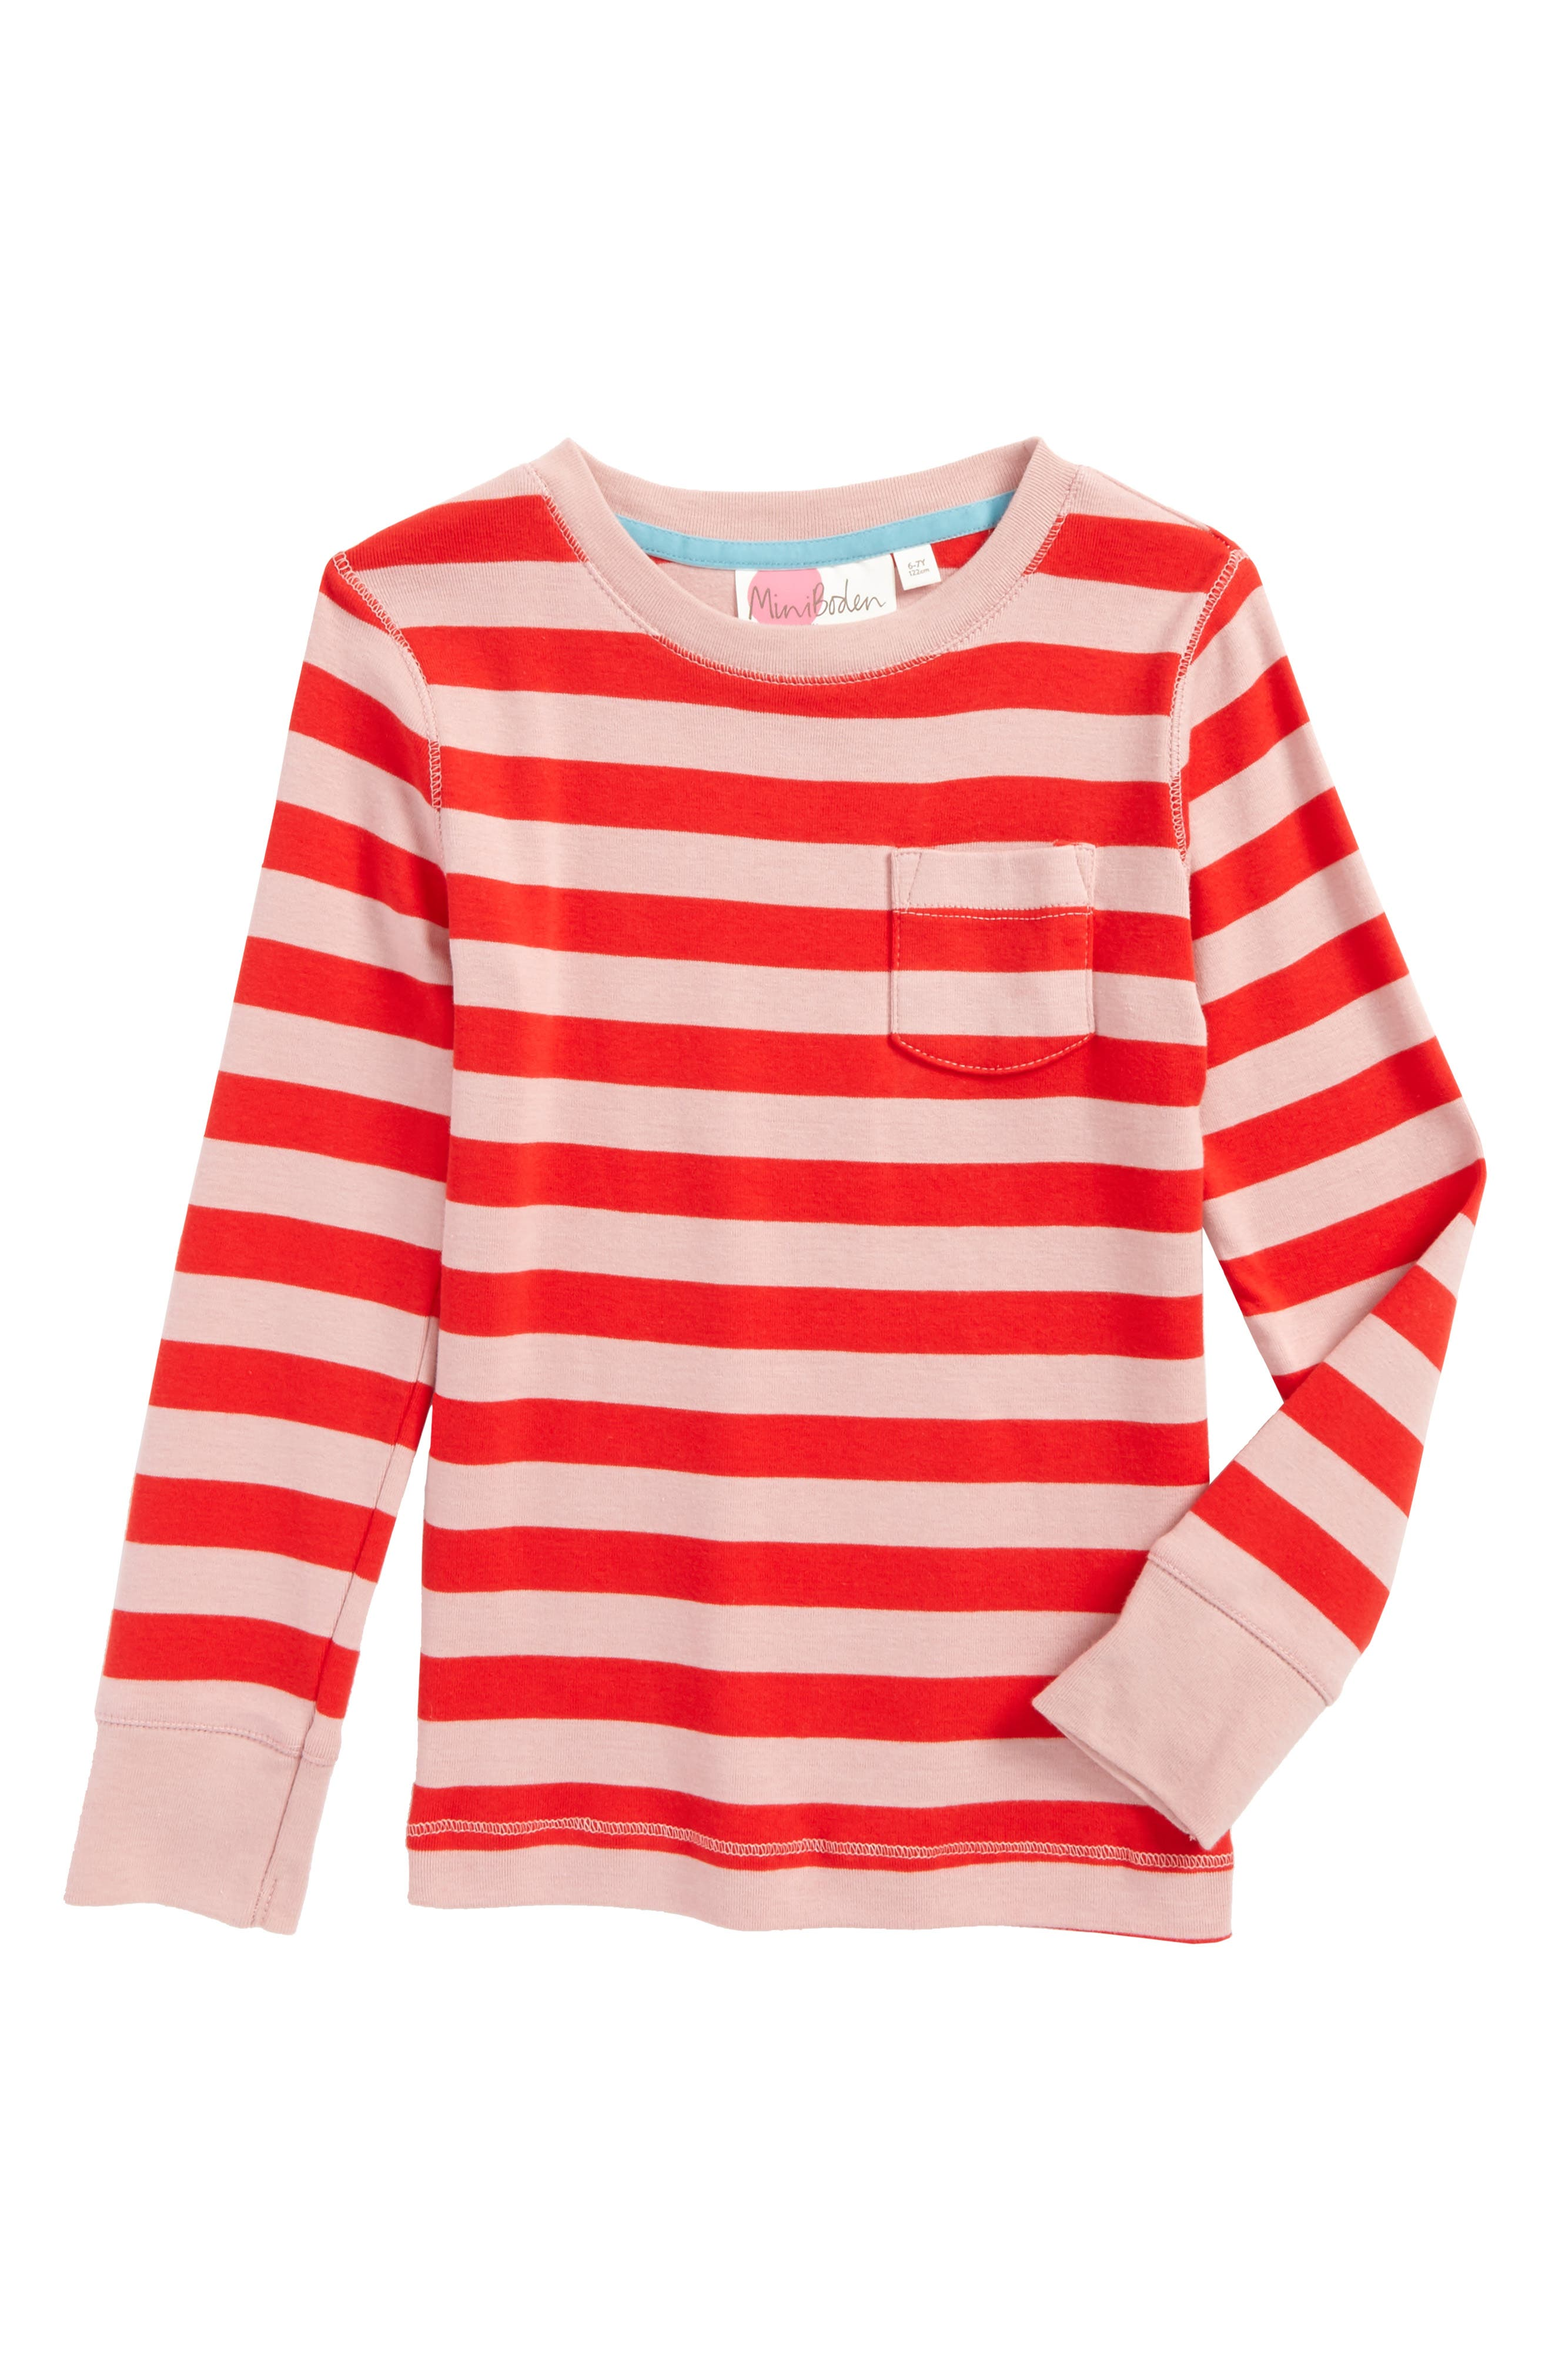 Everyday Tee,                             Main thumbnail 1, color,                             Vintage Pink/ Ladybird Stripe